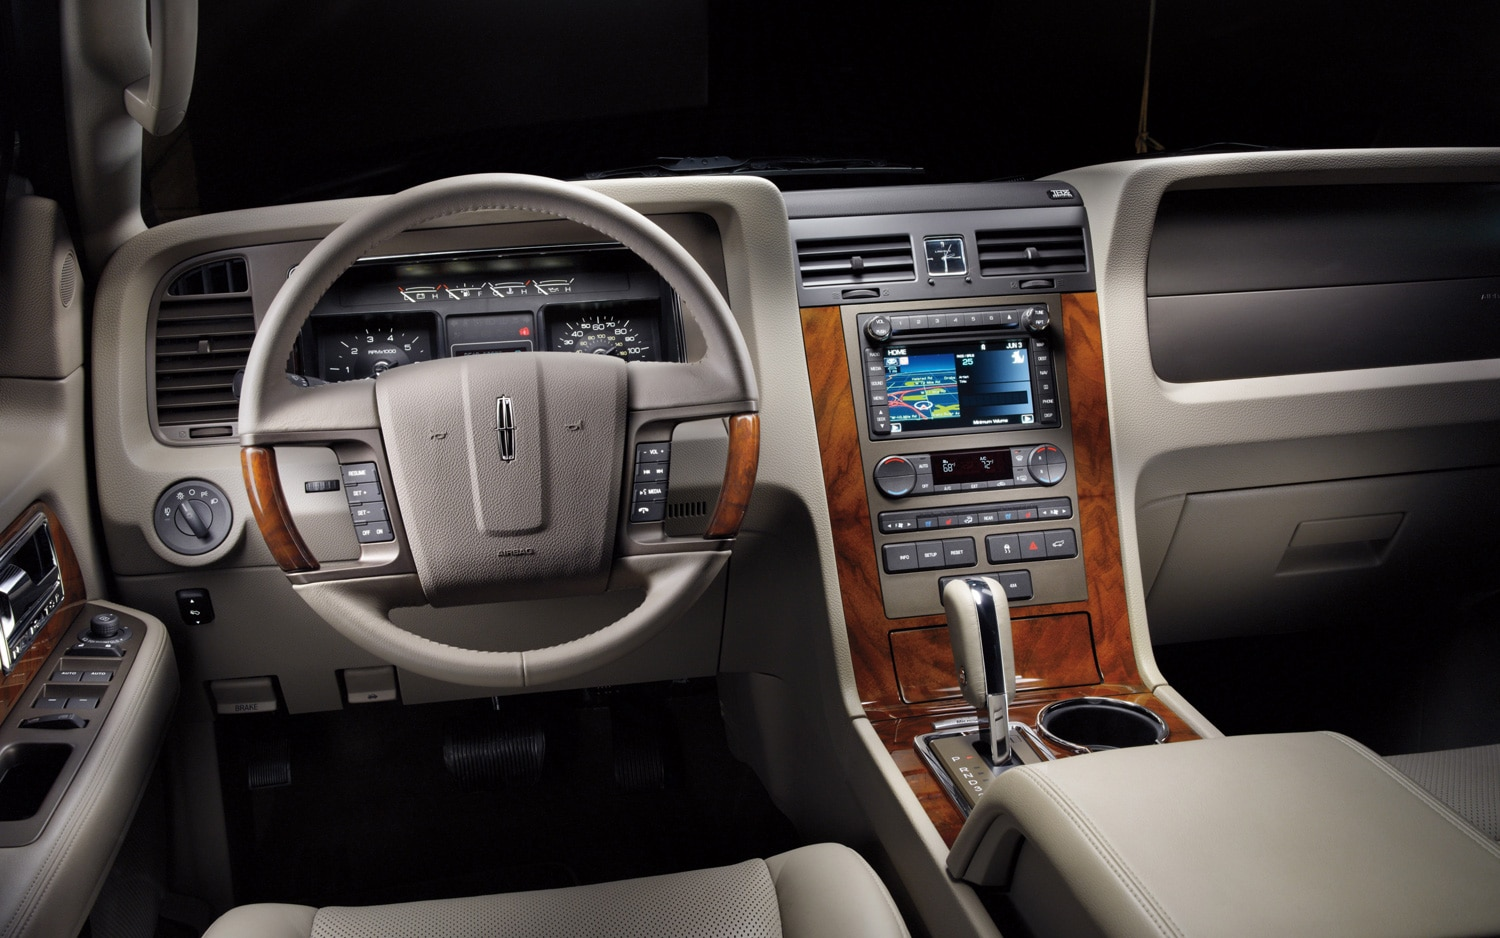 2012 Lincoln Navigator Dash View